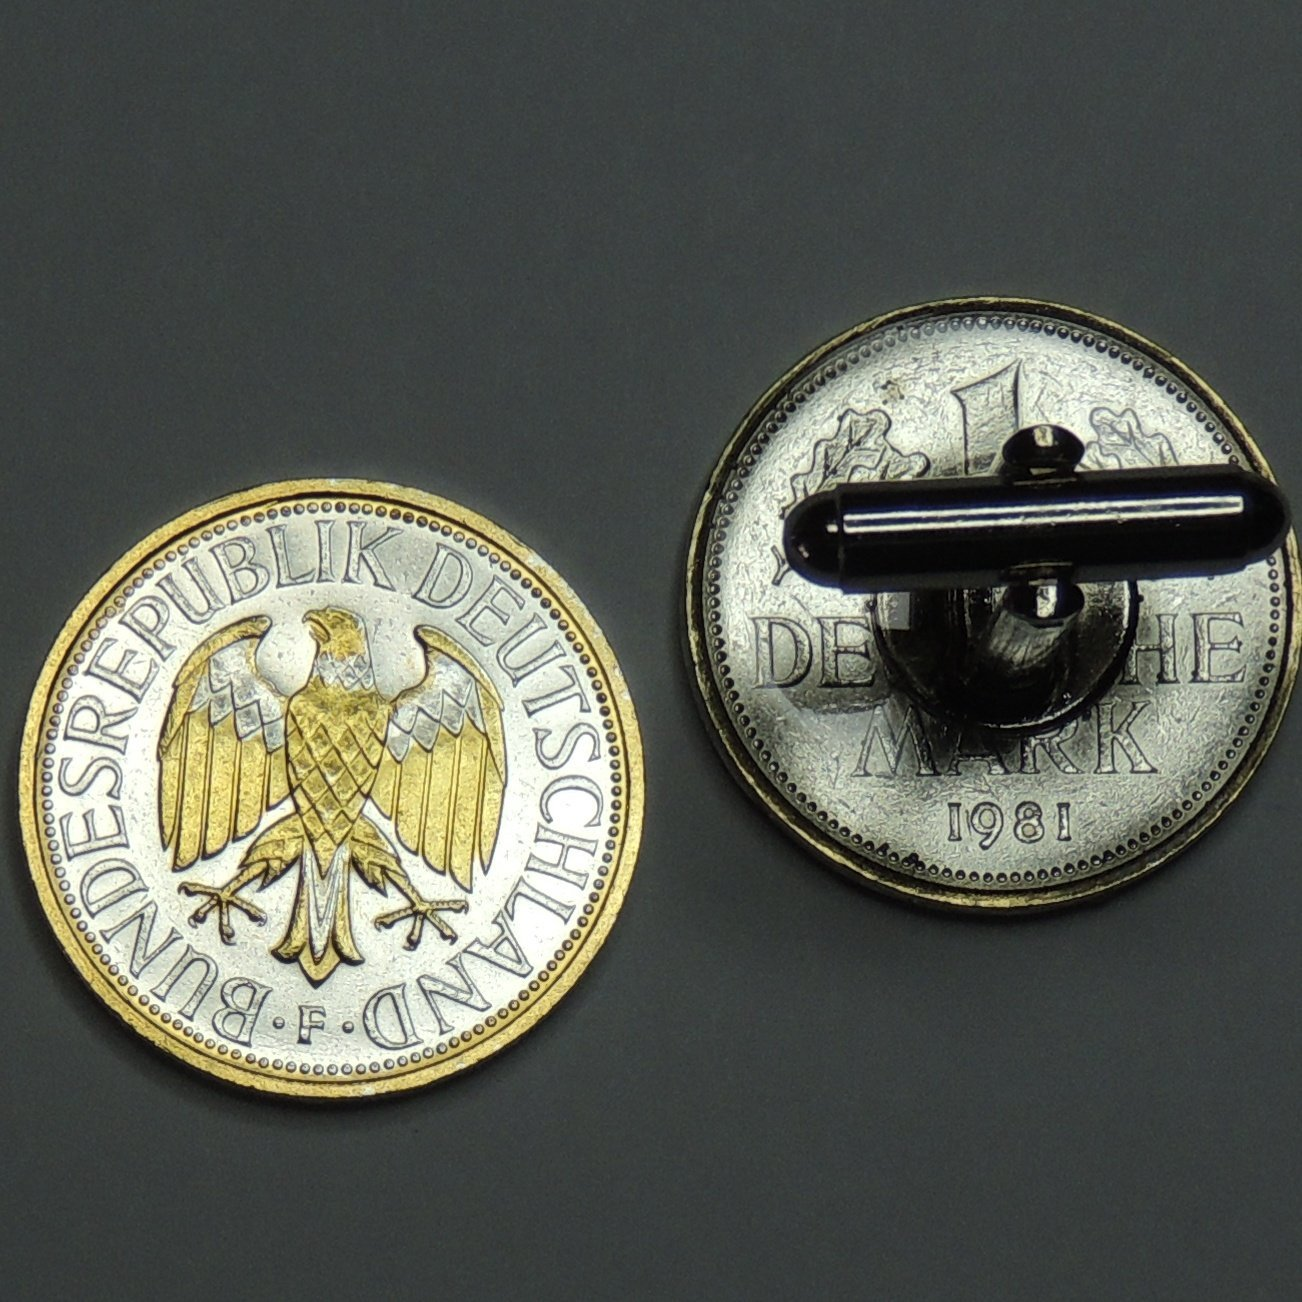 German1 Mark Eagle - 2 Toned(Uniquely Hand Done) Gold & Silver coin cufflinks for men - men's jewelry men's accessories for him groomsmen